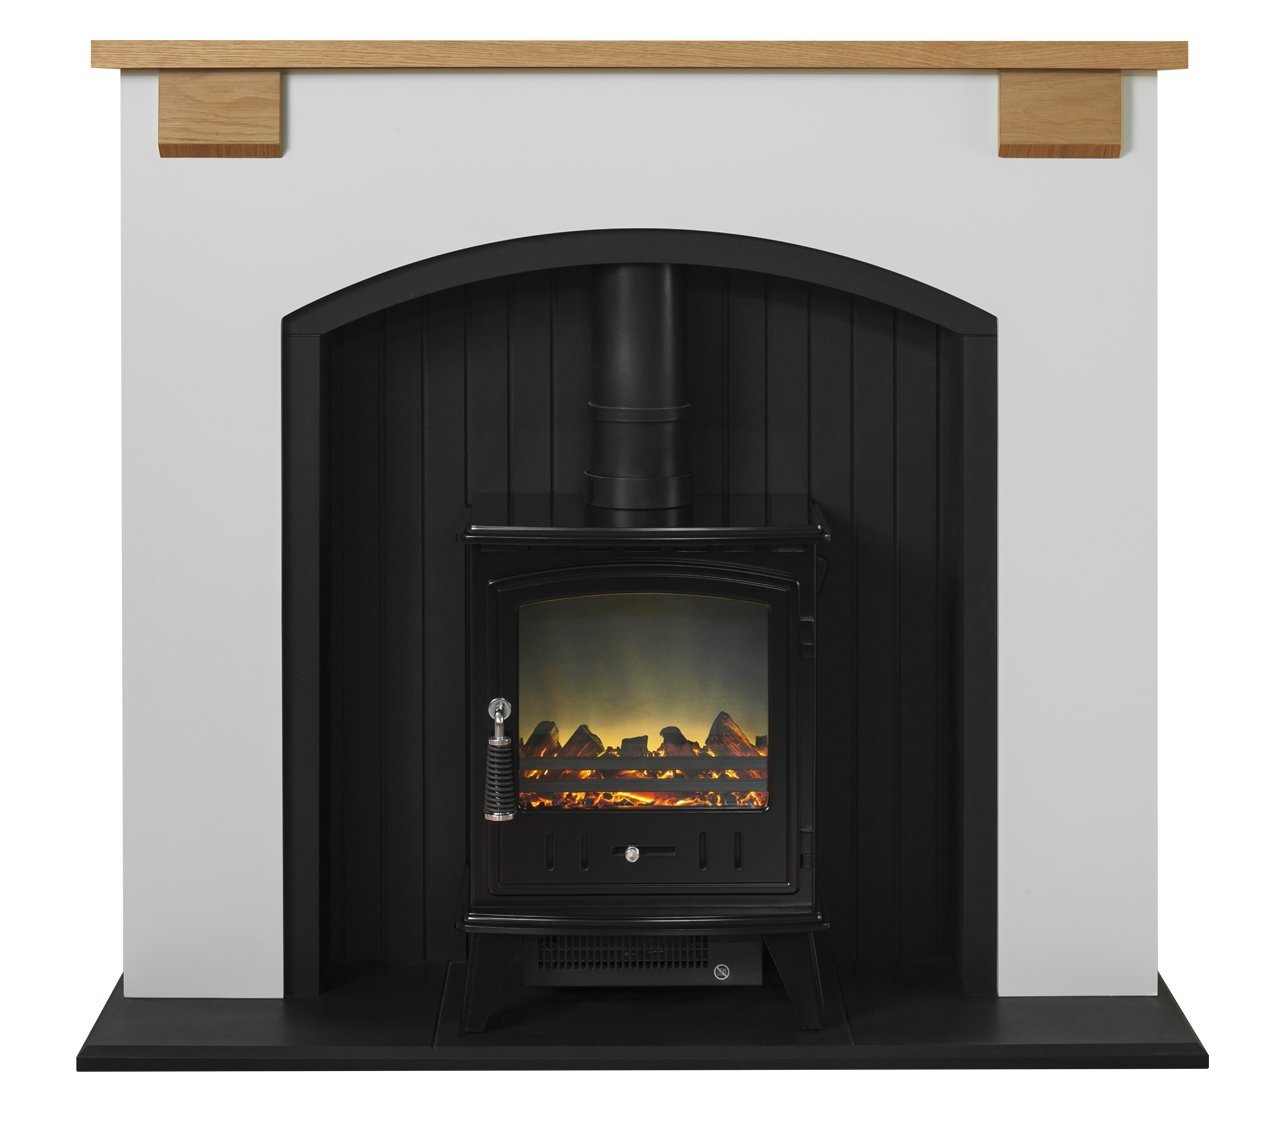 adam vermont stove suite with aviemore electric stove in black